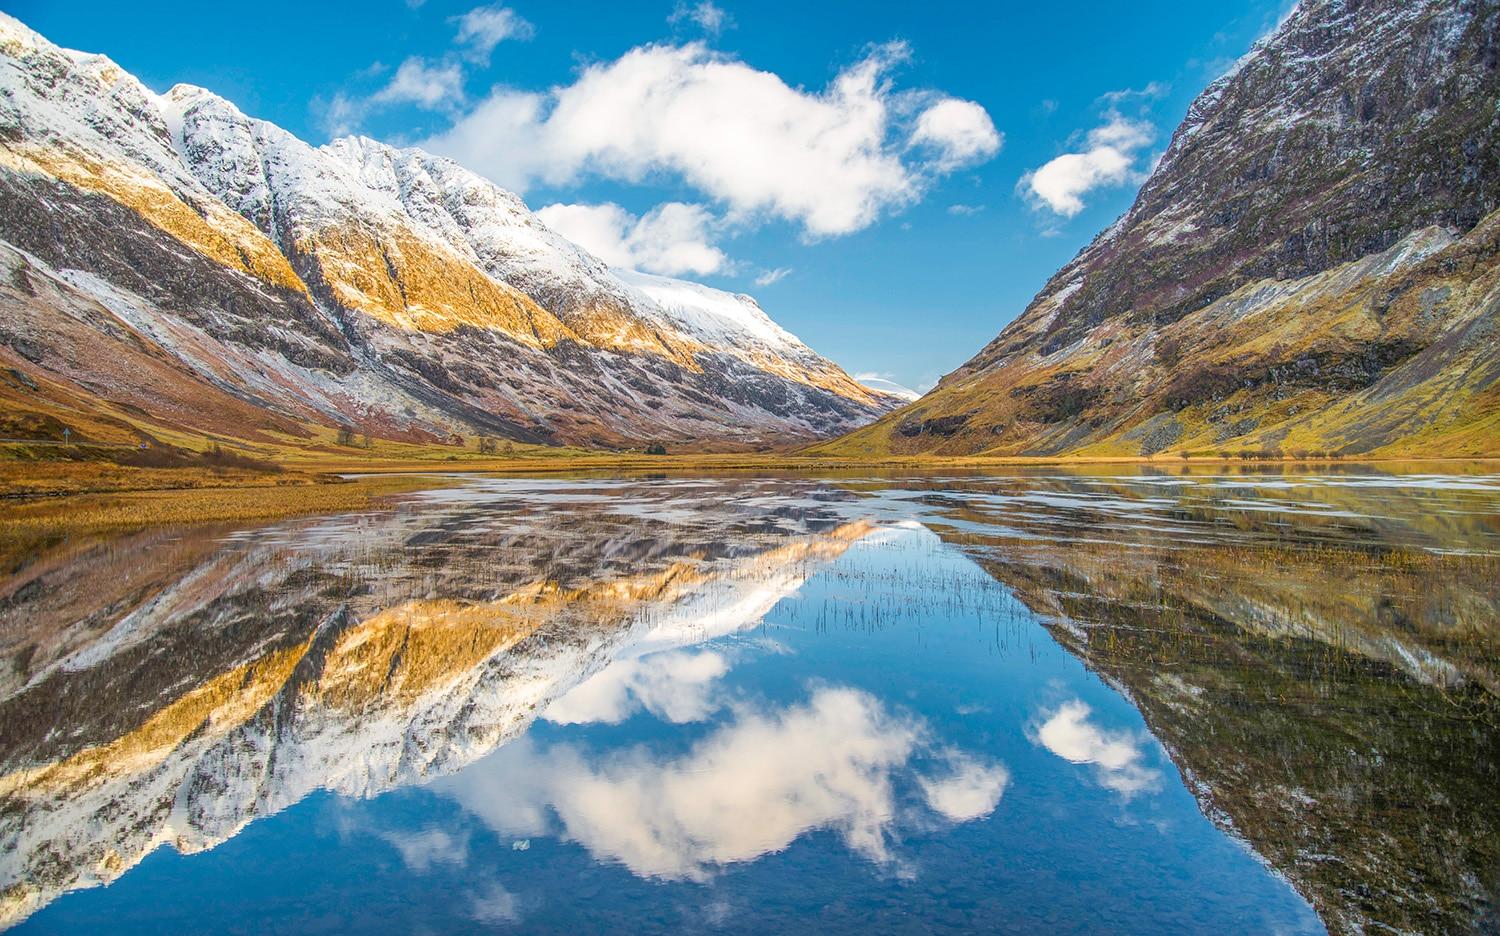 A lovely view of mountains and water in Glencoe, one of the many scenic places to visit on a private tour of Scotland